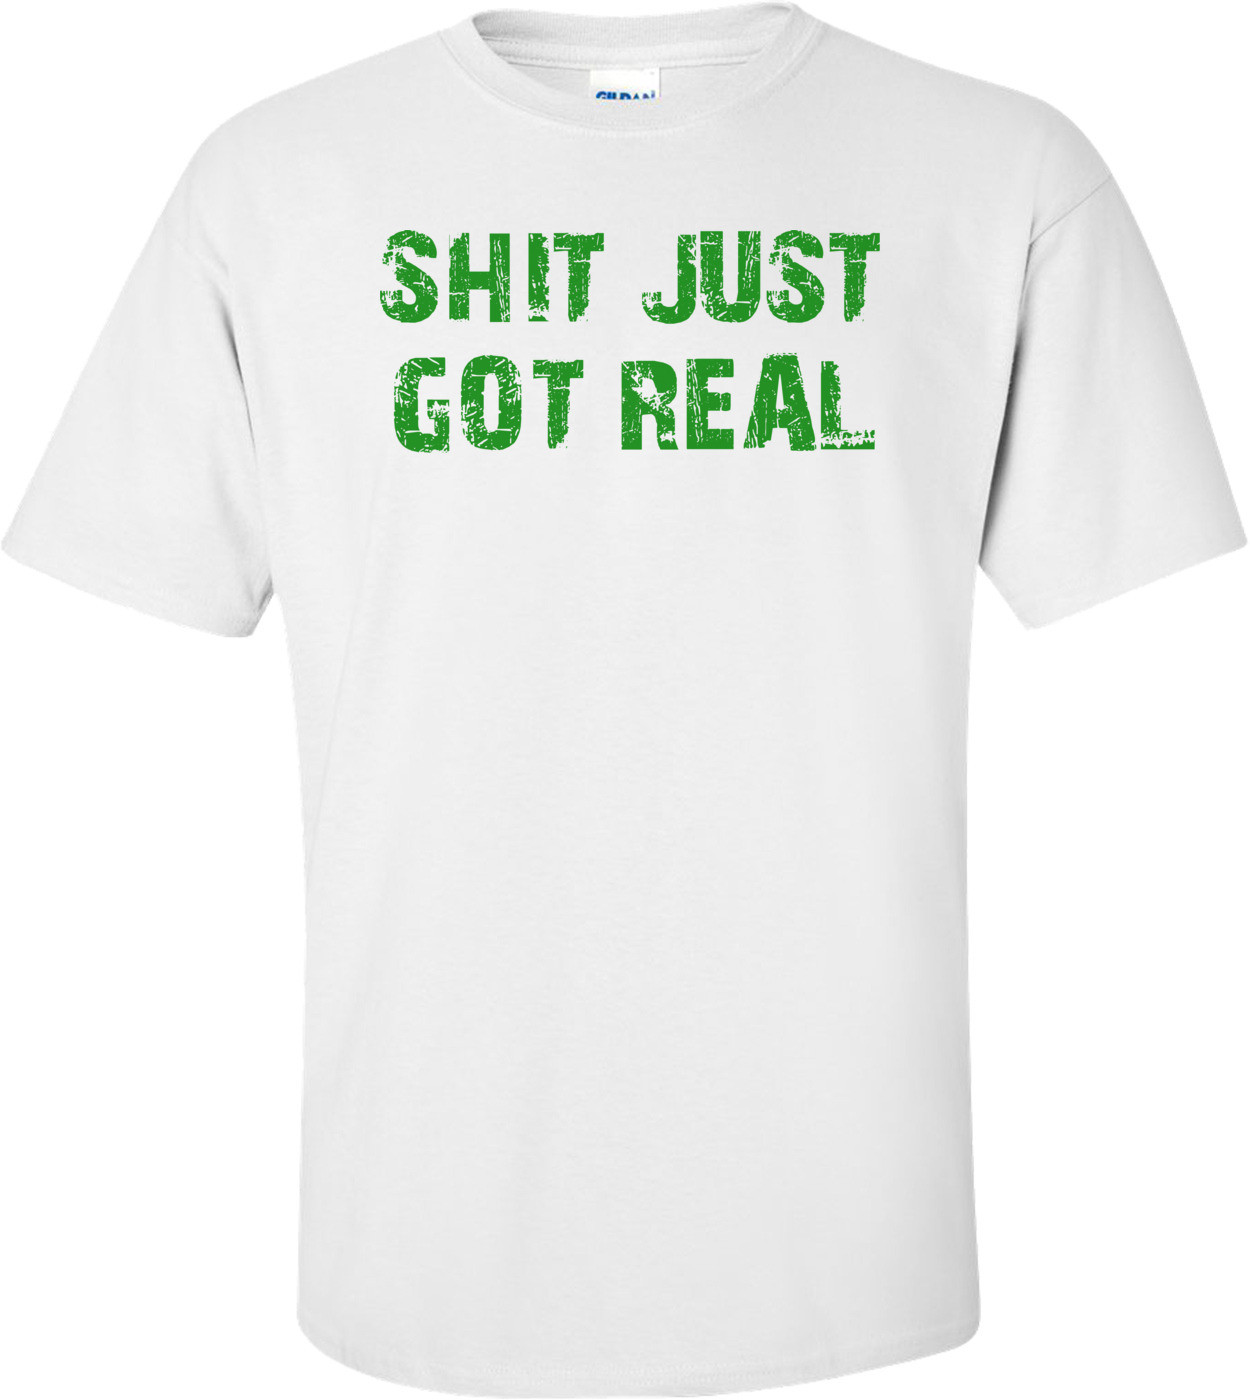 SHIT JUST GOT REAL Shirt